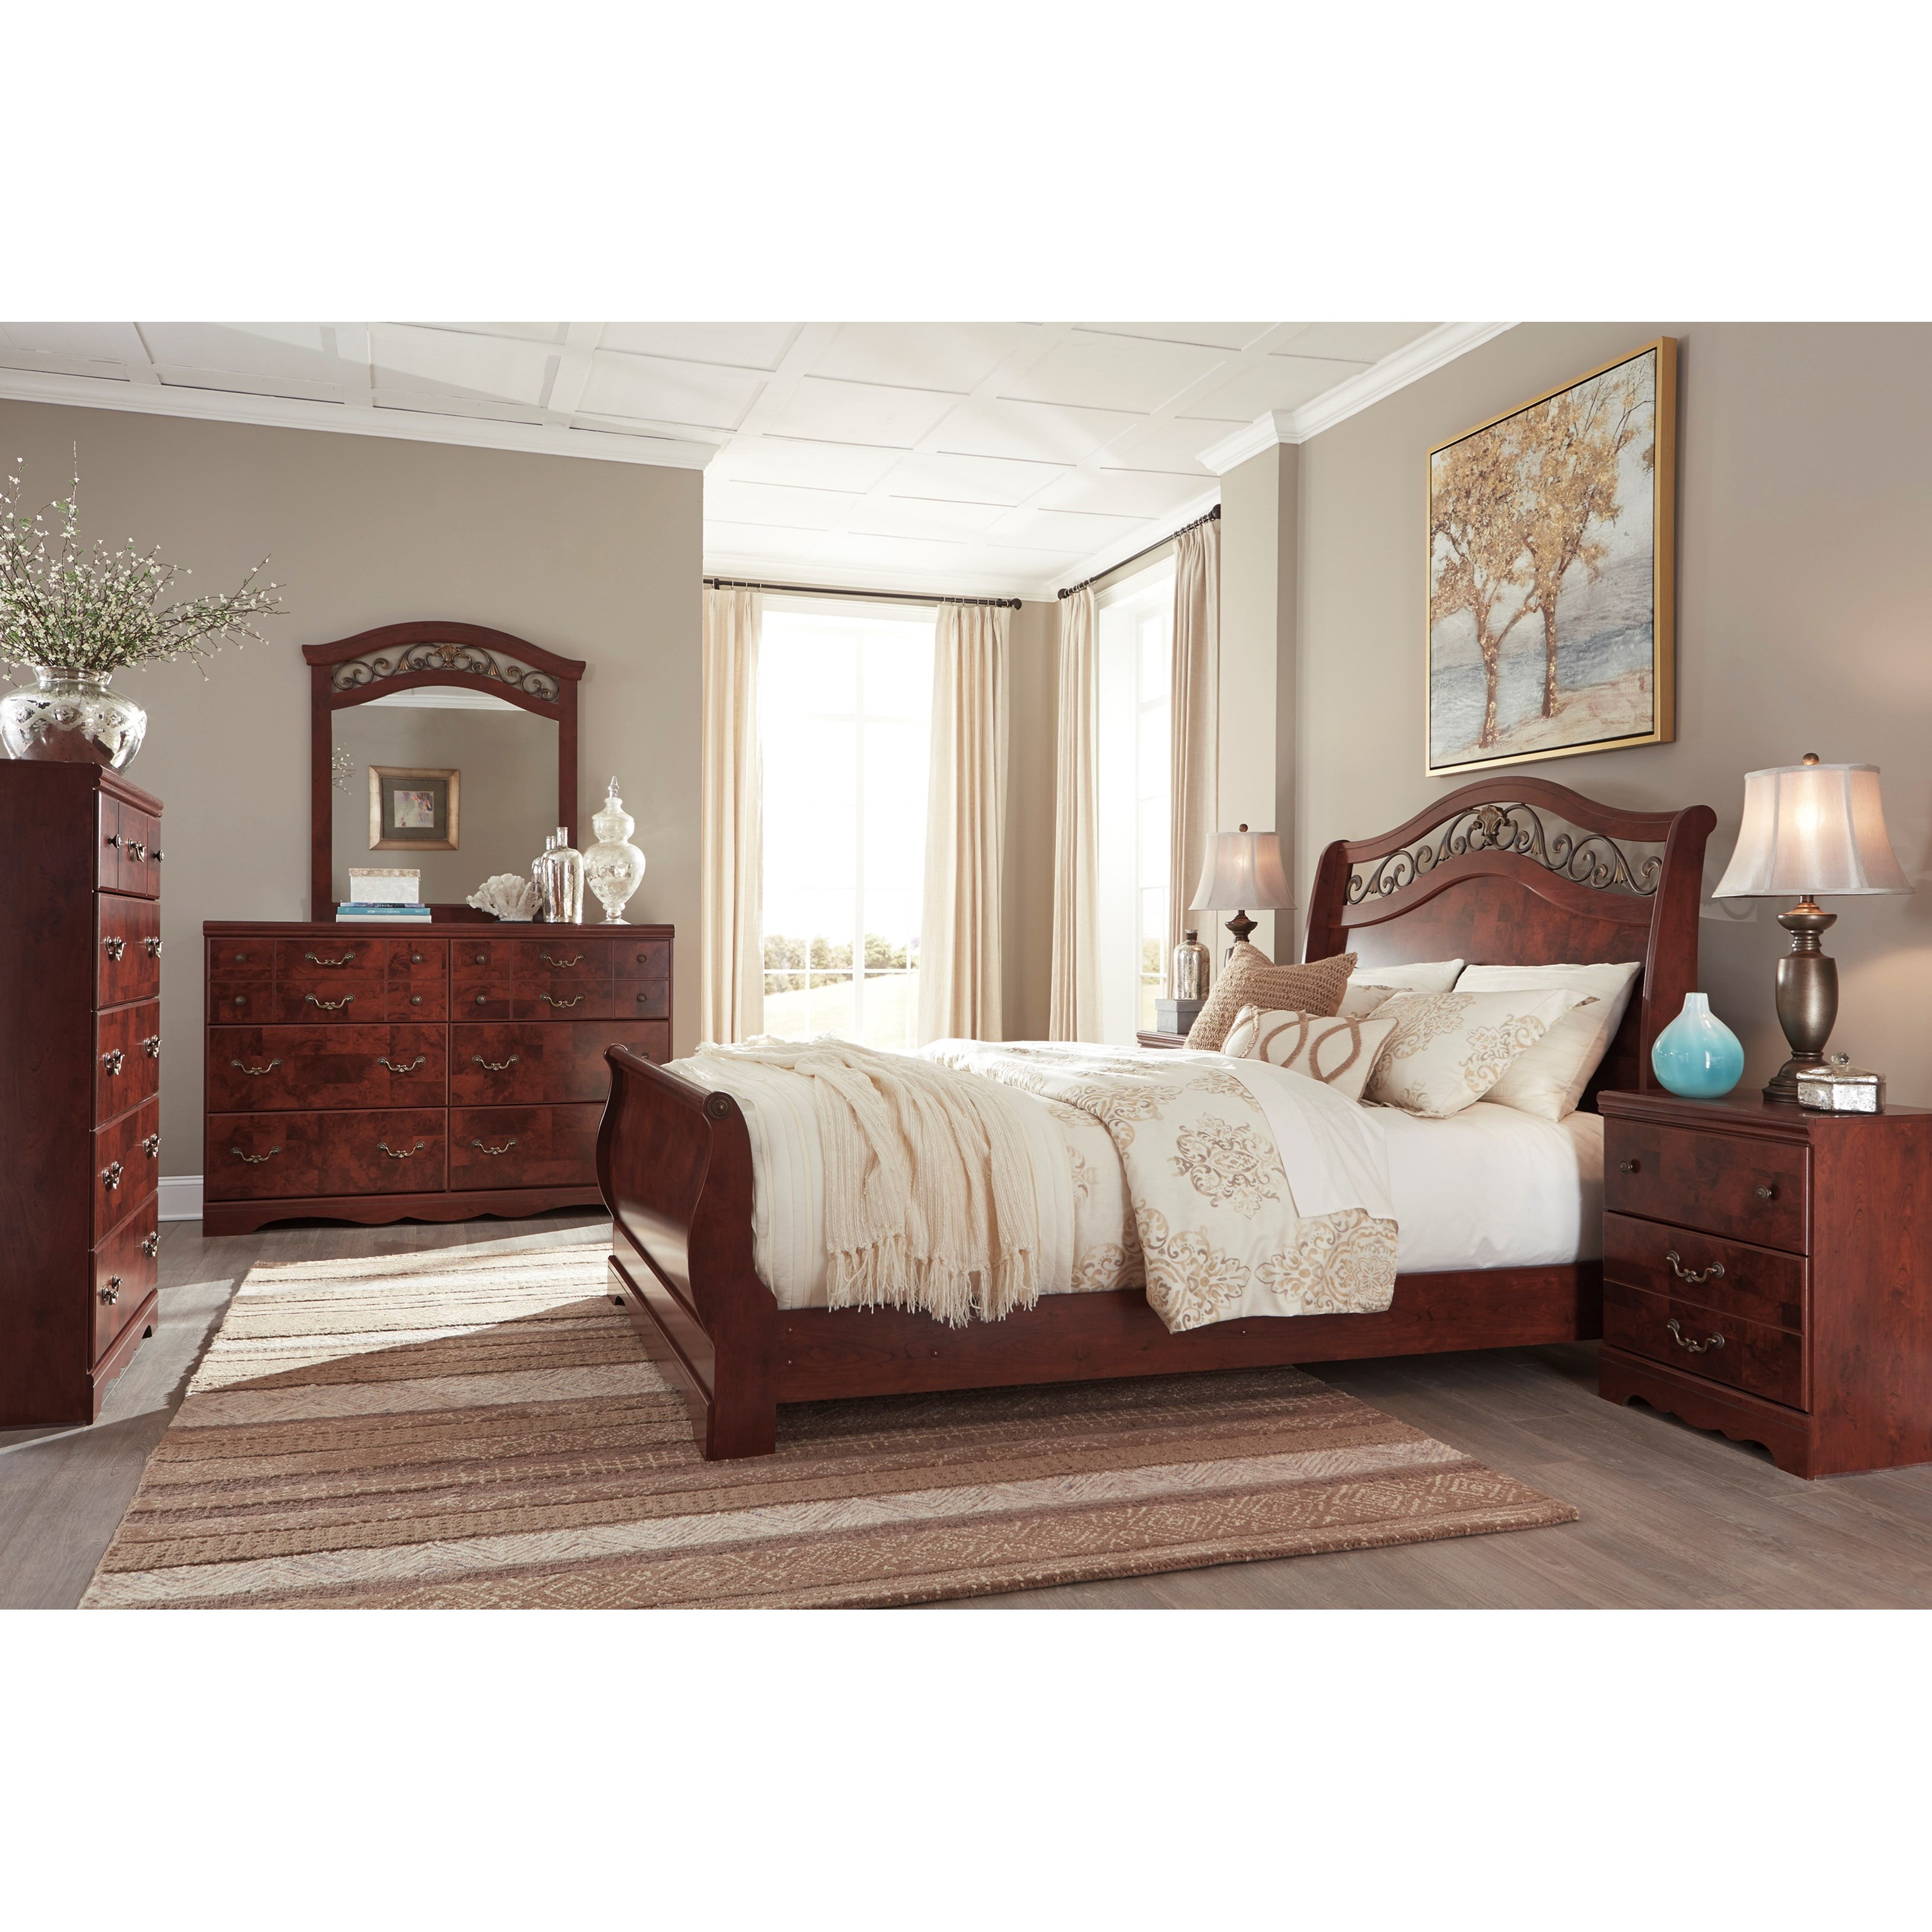 Ashley Furniture Outlet Chicago: StyleLine Delianna King Bedroom Group